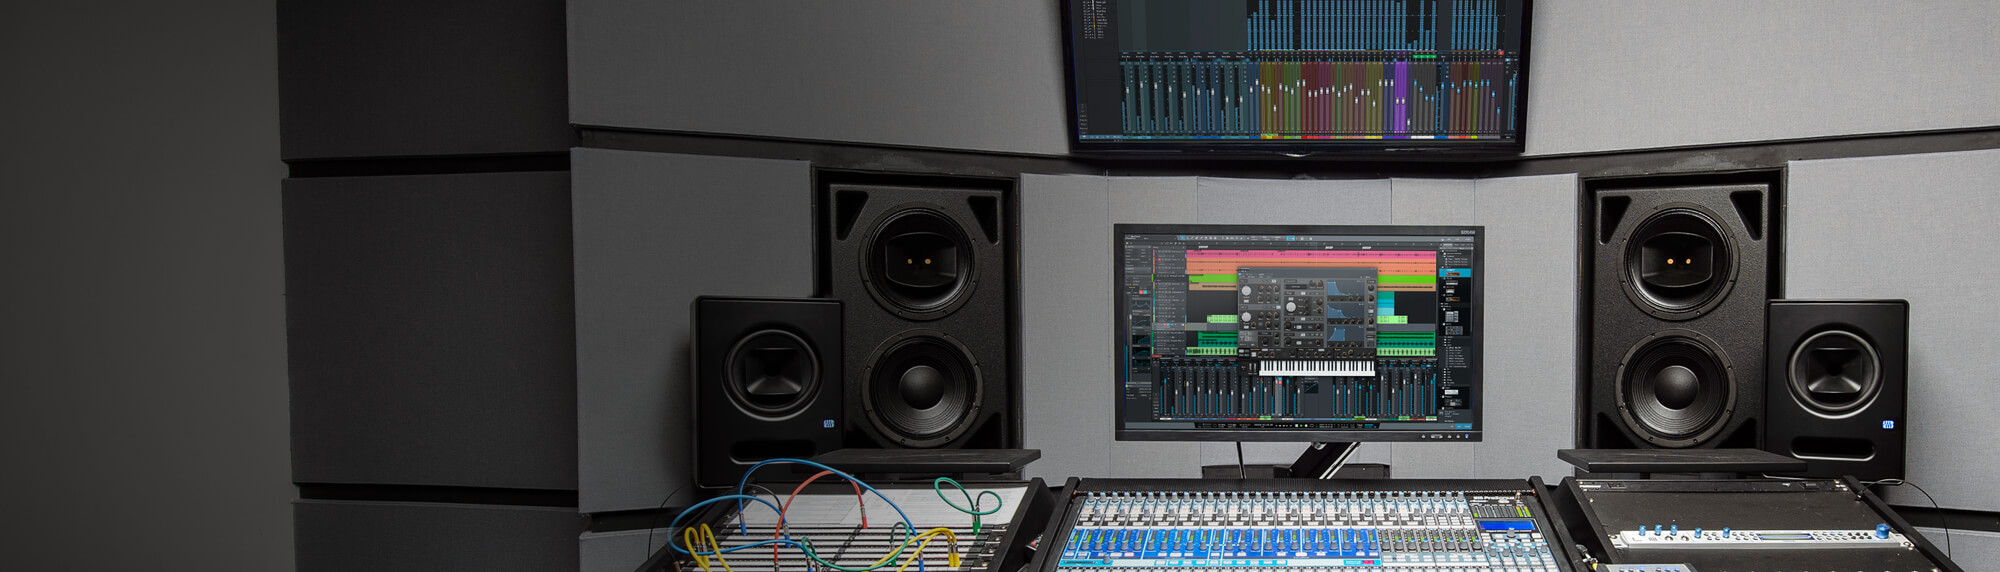 Studio one presonus studio one isnt a closed application that exists in a vacuum its an open environment that is designed to be the nexus of your music production baditri Gallery